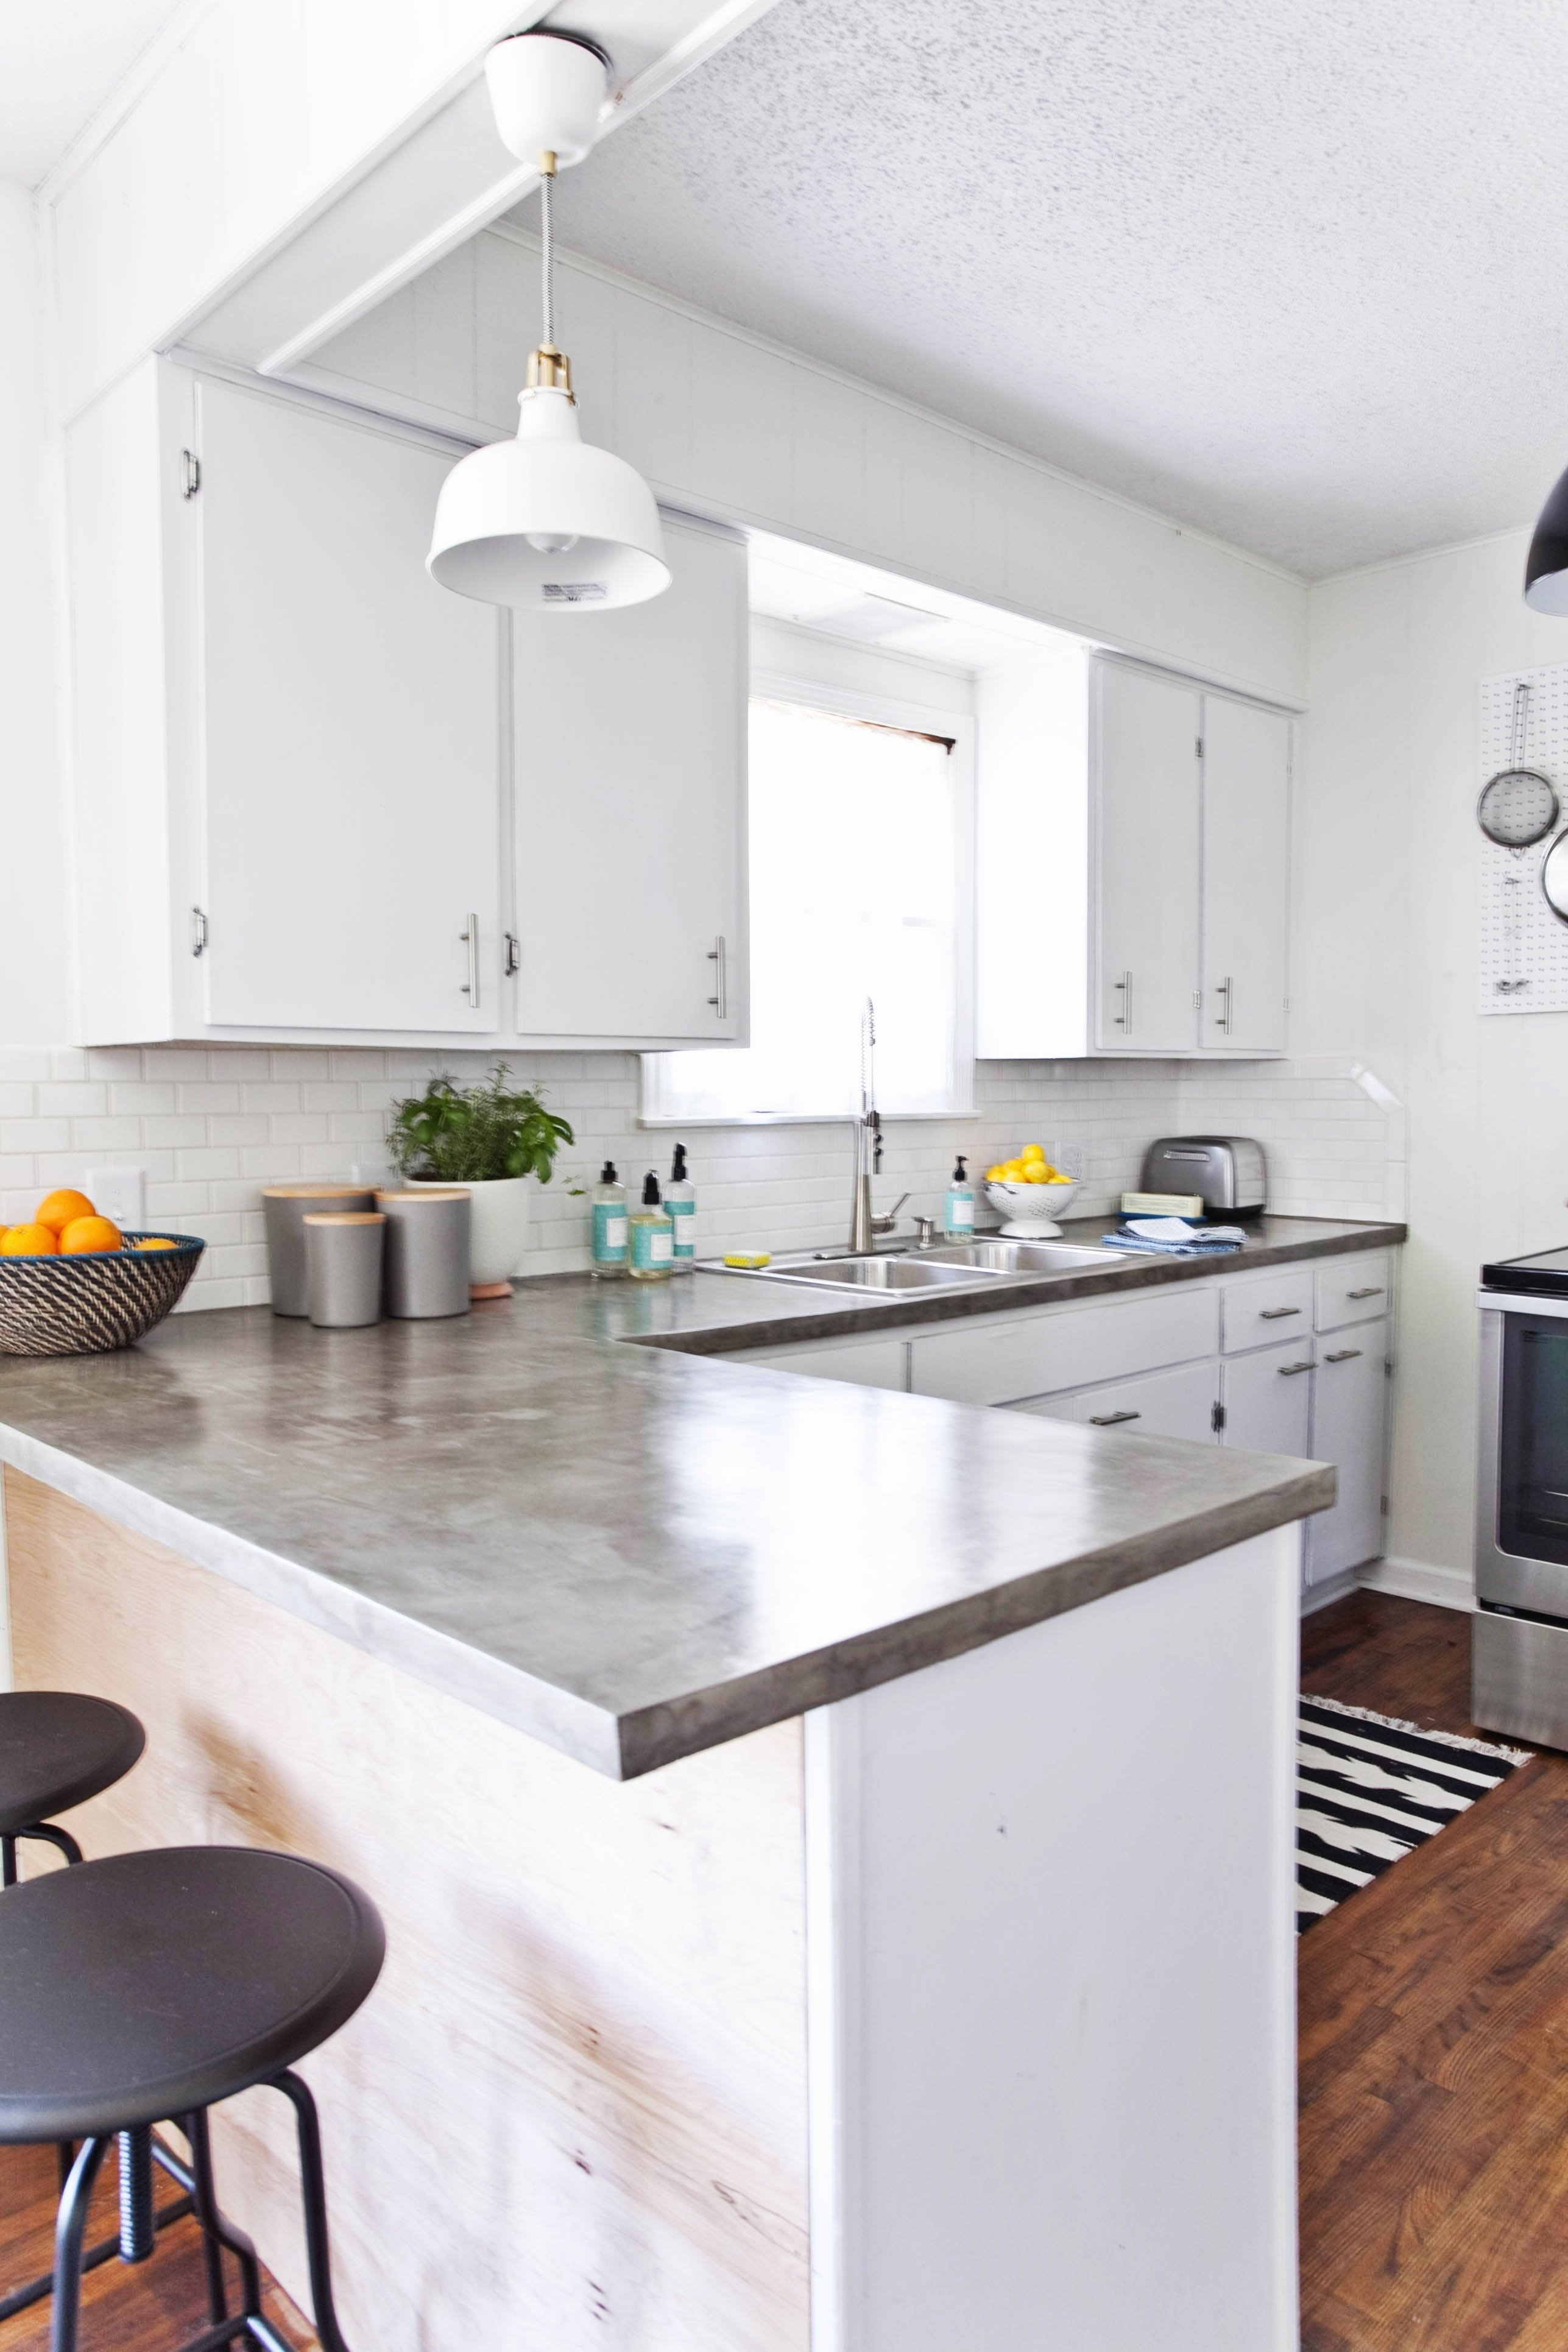 10 Spectacular Kitchen Countertop Ideas With White Cabinets kitchen countertop ideas with white cabinets imagestc 2020